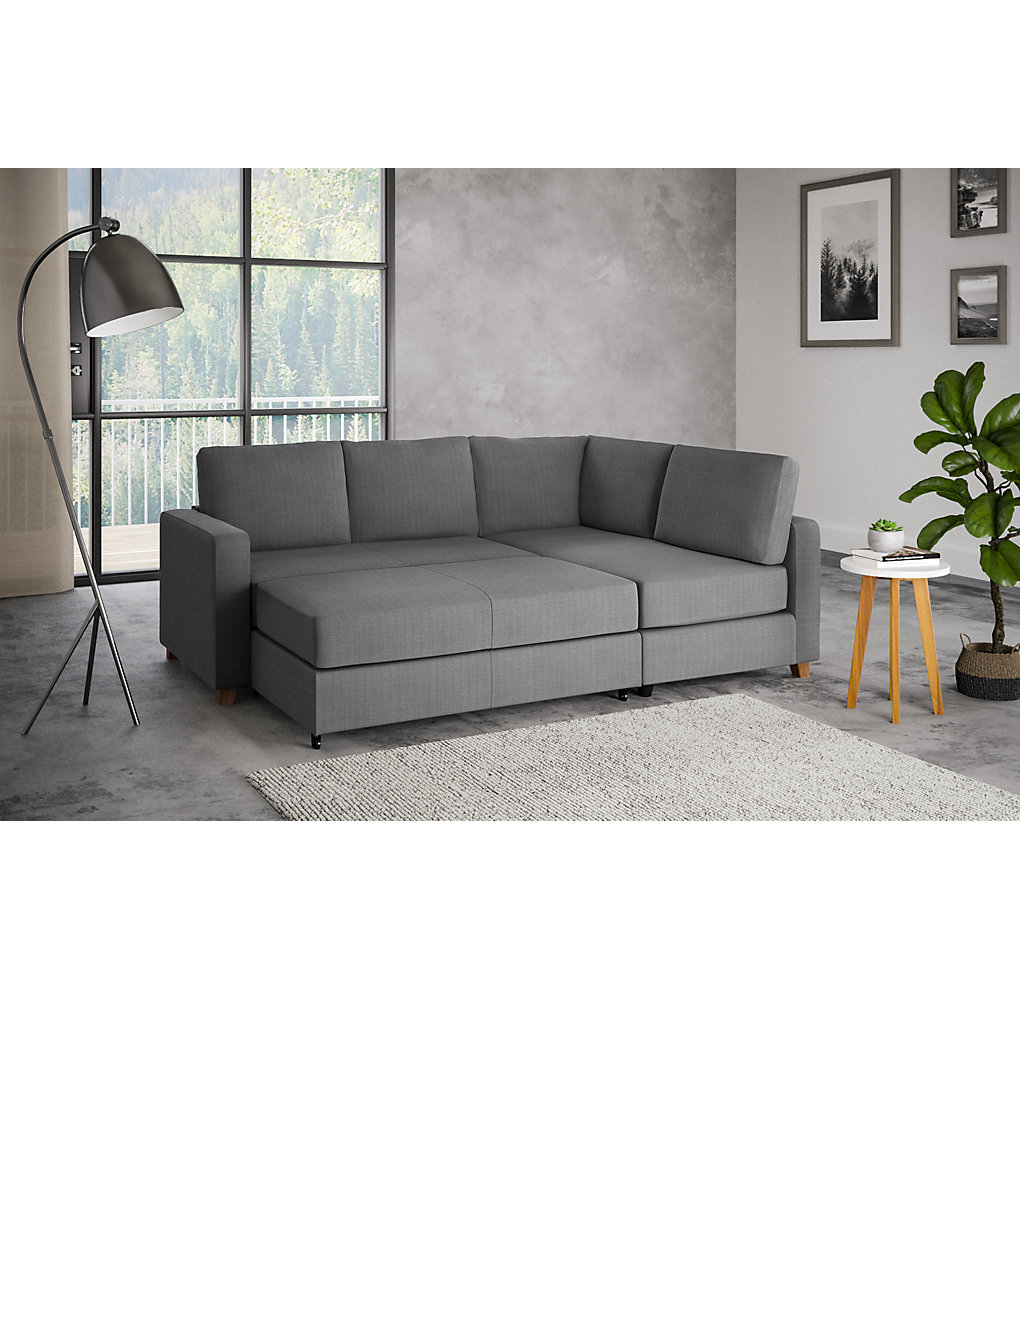 Tromso Corner Sofa Bed (Right Hand)